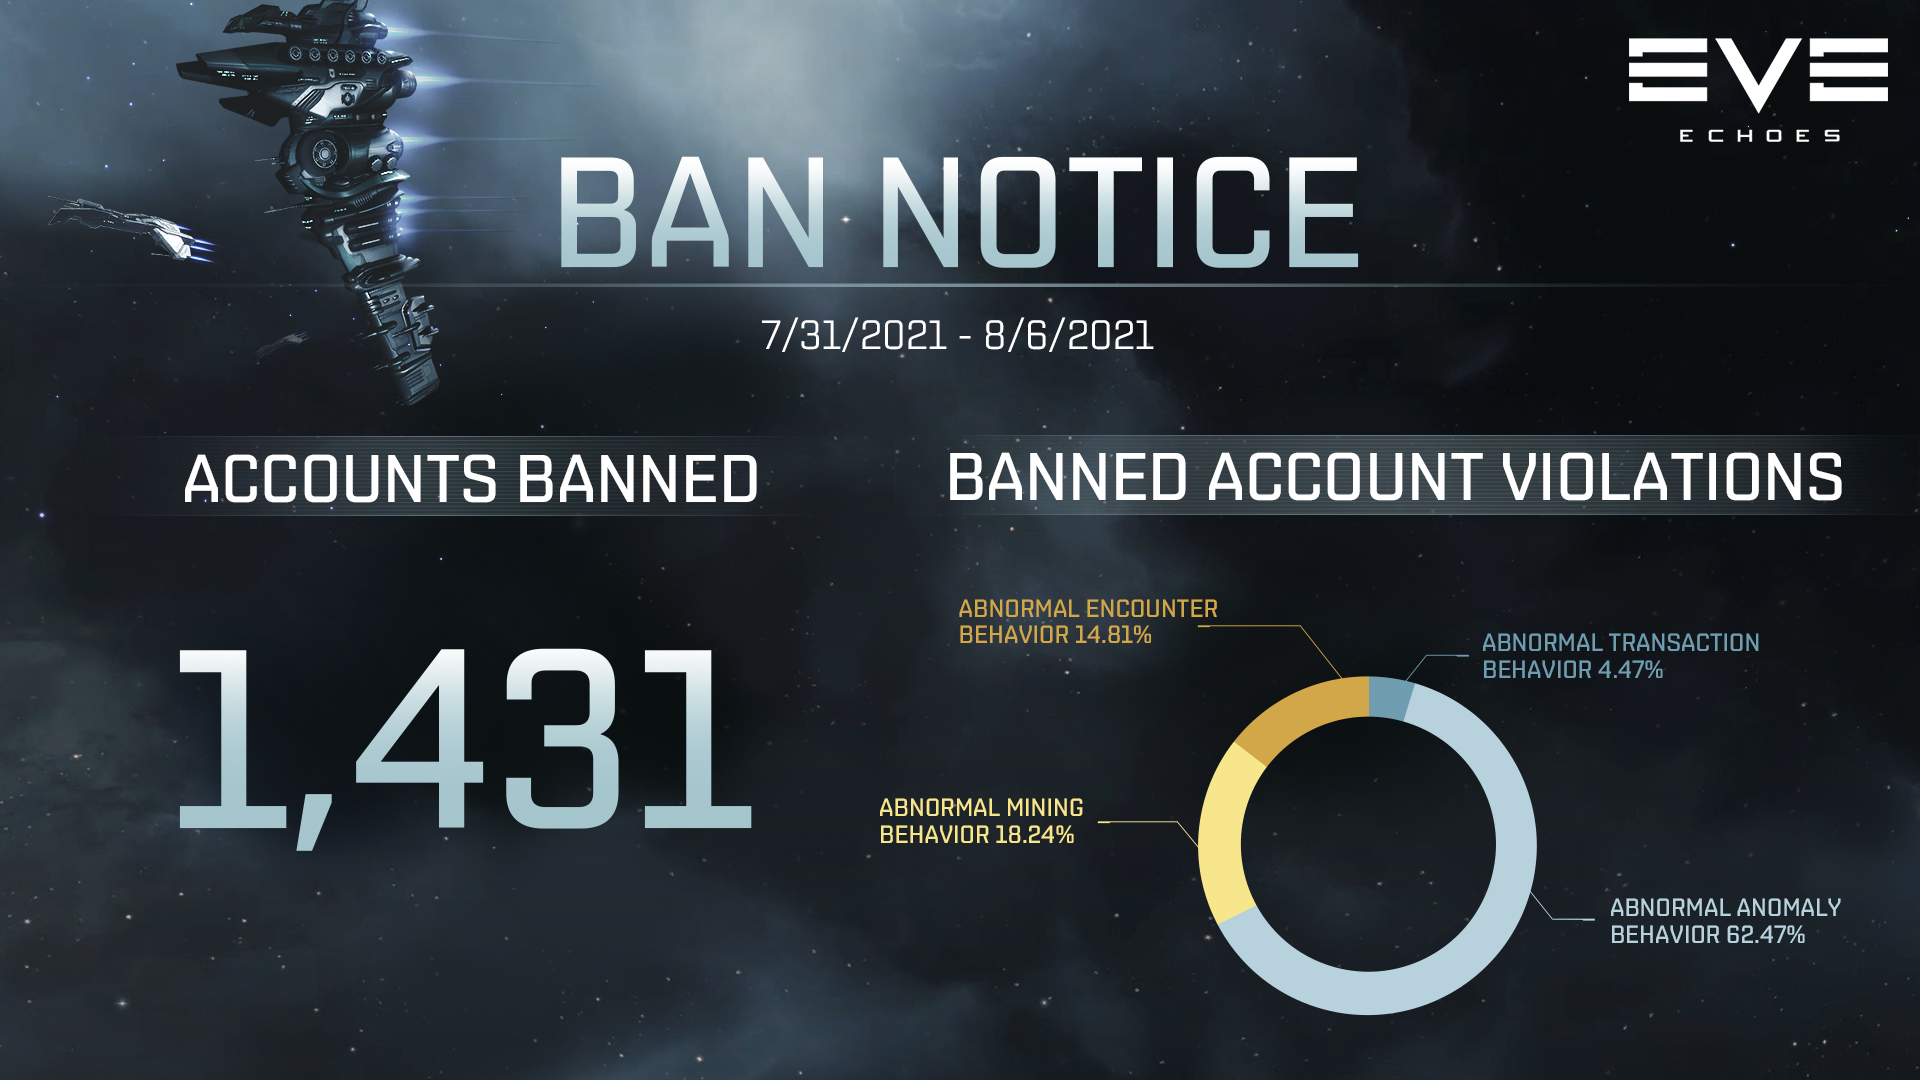 Weekly Ban Notice - August 9